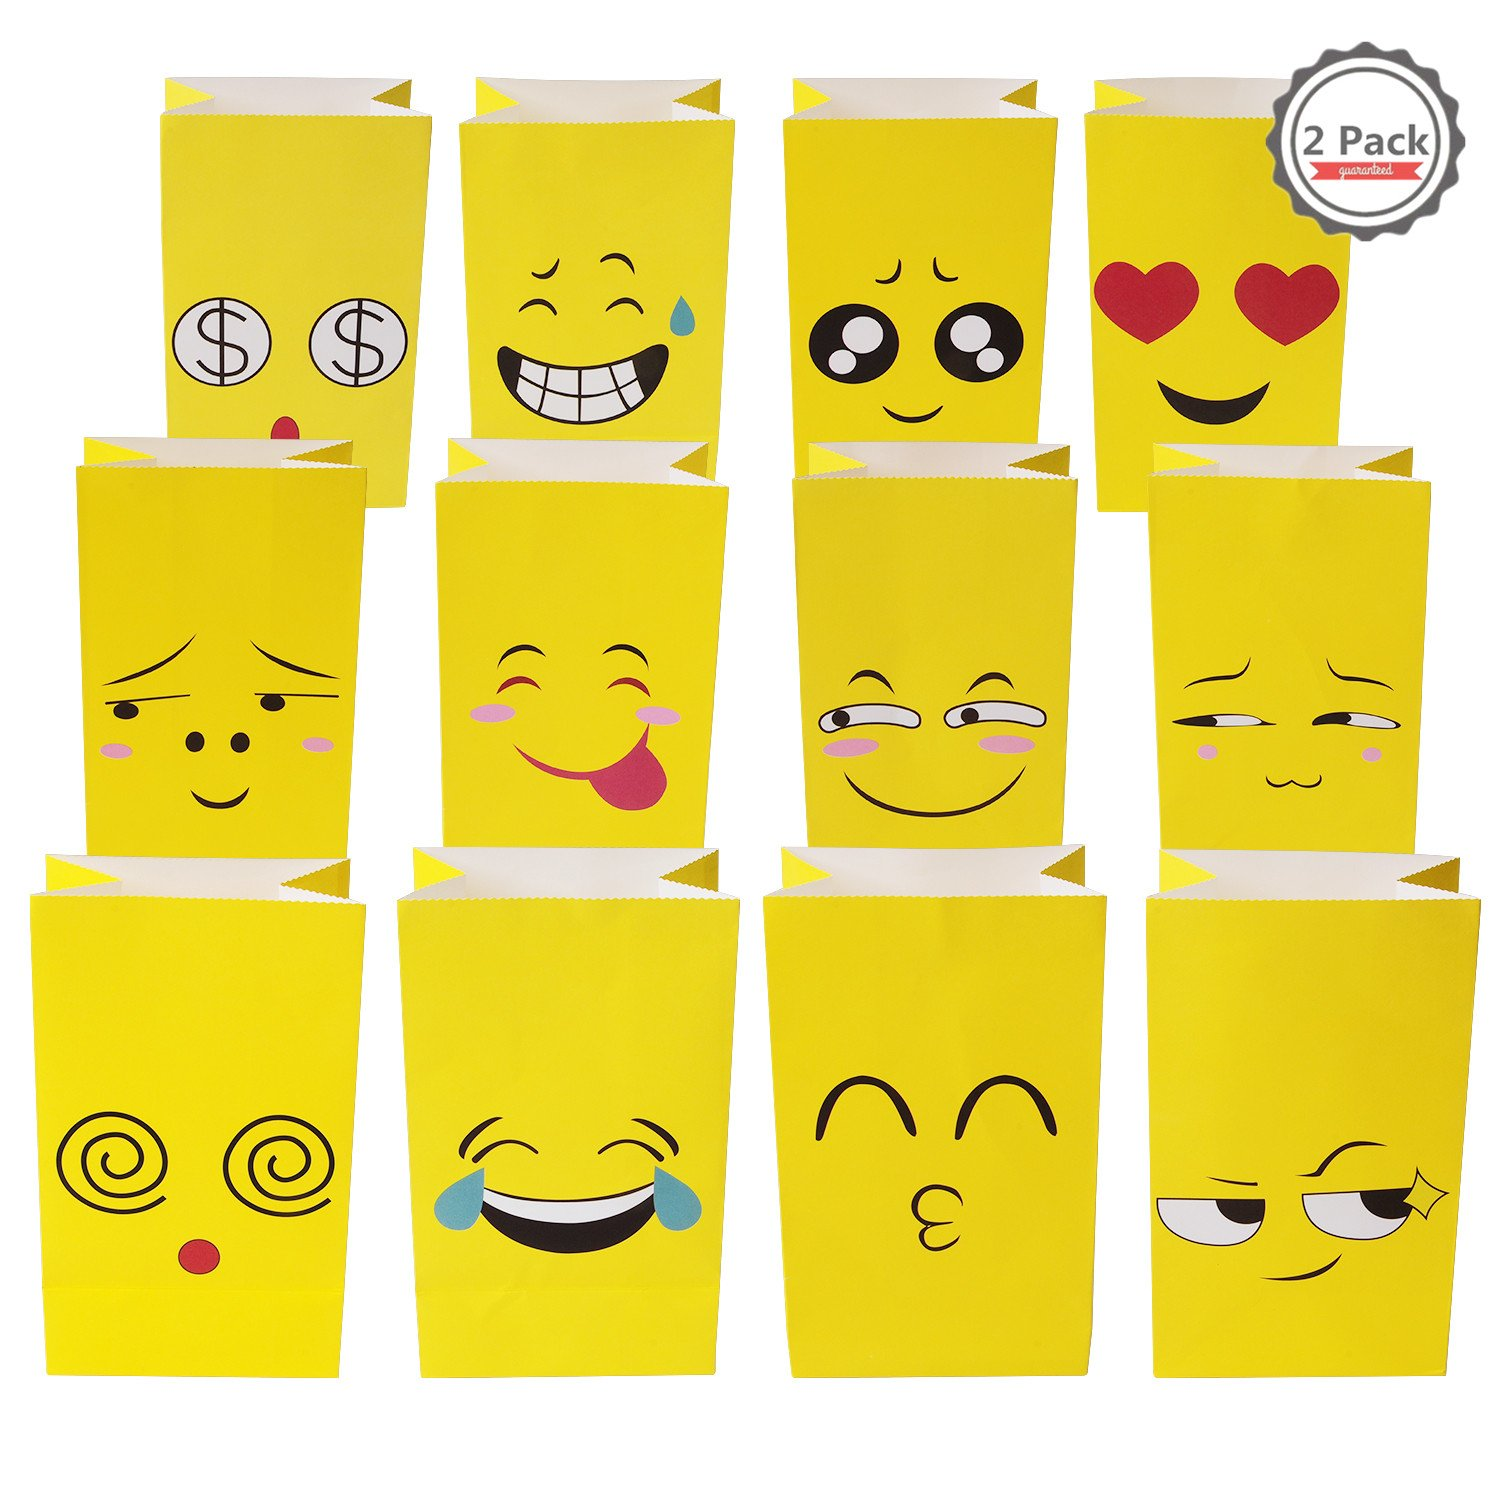 Pack of 24 Emoji Paper Bags Party Treat Bags for Kids,Birthday Celebration Parties, Fun Classroom Treats & Rewards, Carnivals, Games, Candy Goodie Grab Bag, Deluxe Emoticon Gift Supplies (24 Pack)